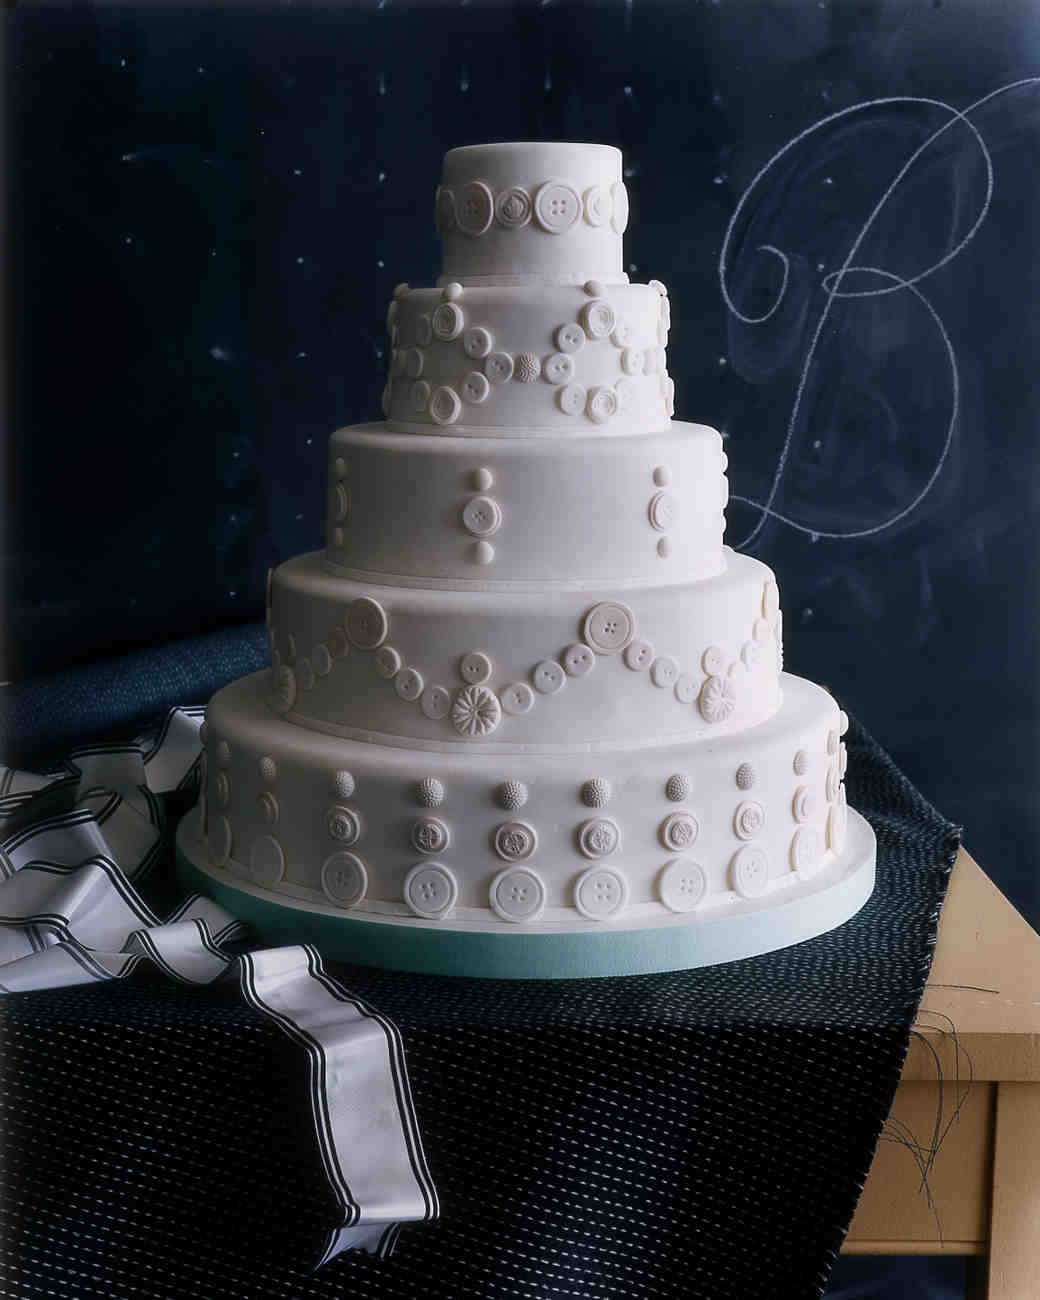 weddings-wa101750-buttoncake.jpg